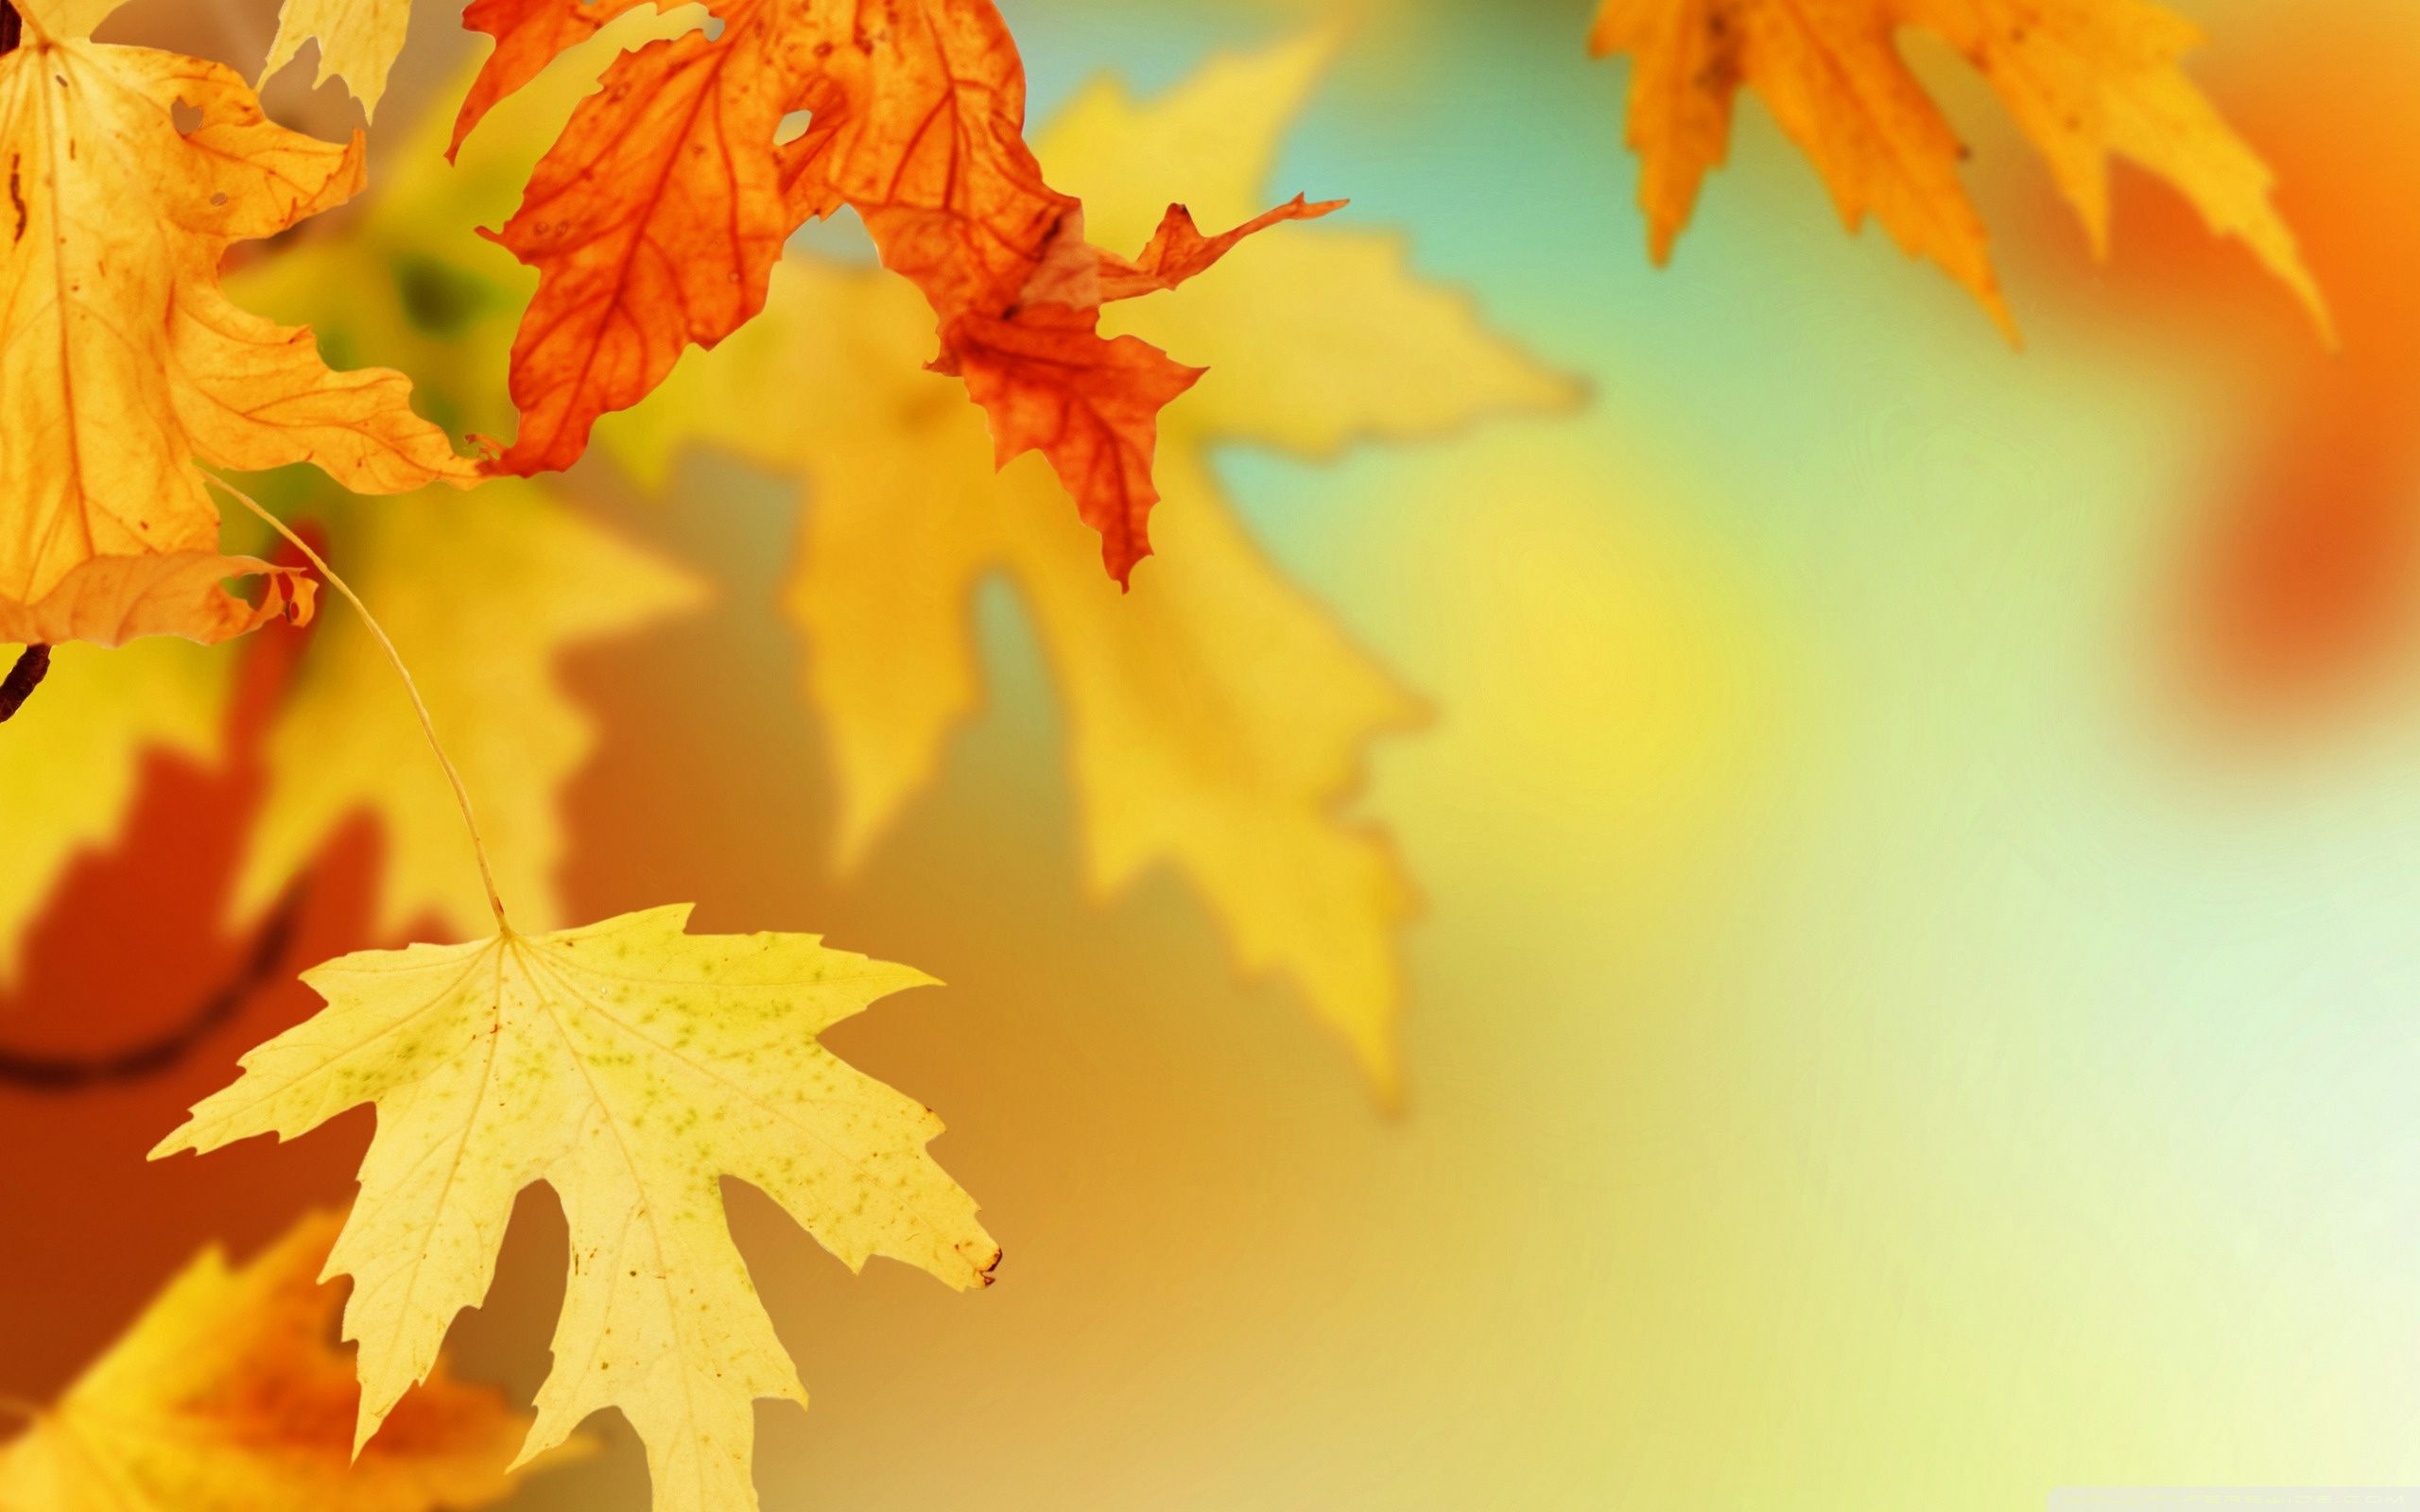 50 Autumn Leaves Clip Art Wallpapers   Download at WallpaperBro 2560x1600